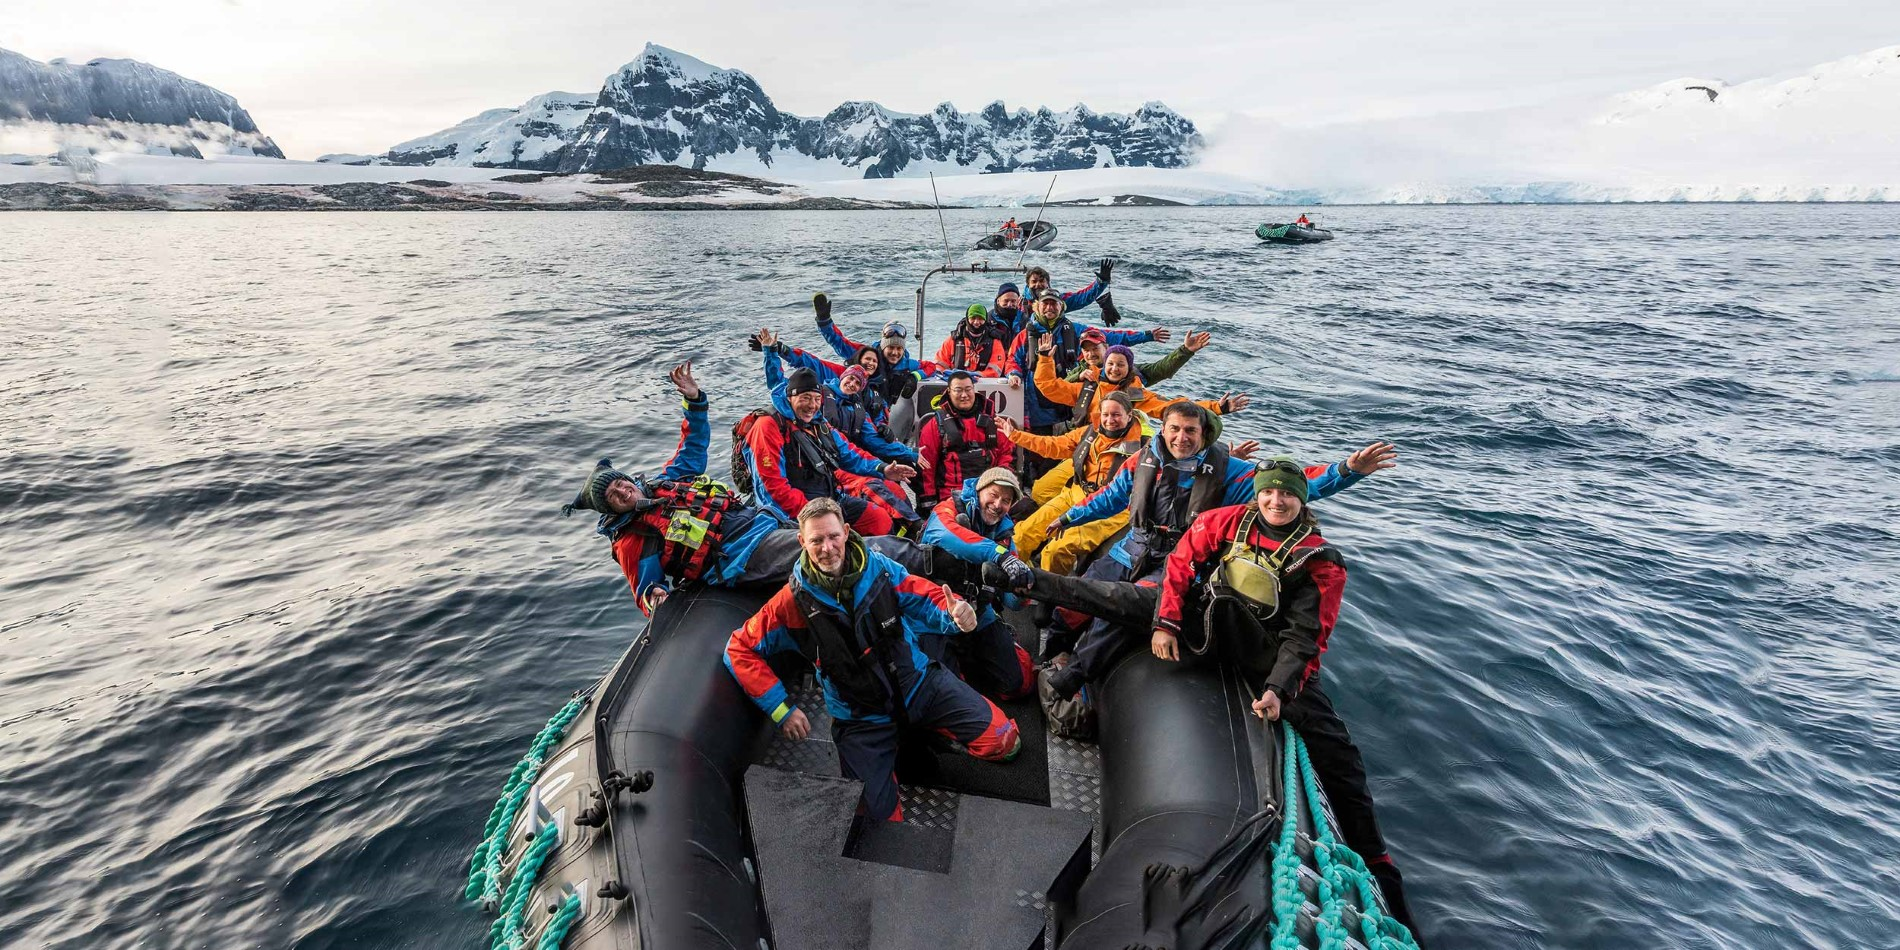 expedition-team-karsten-bidstrup.jpg